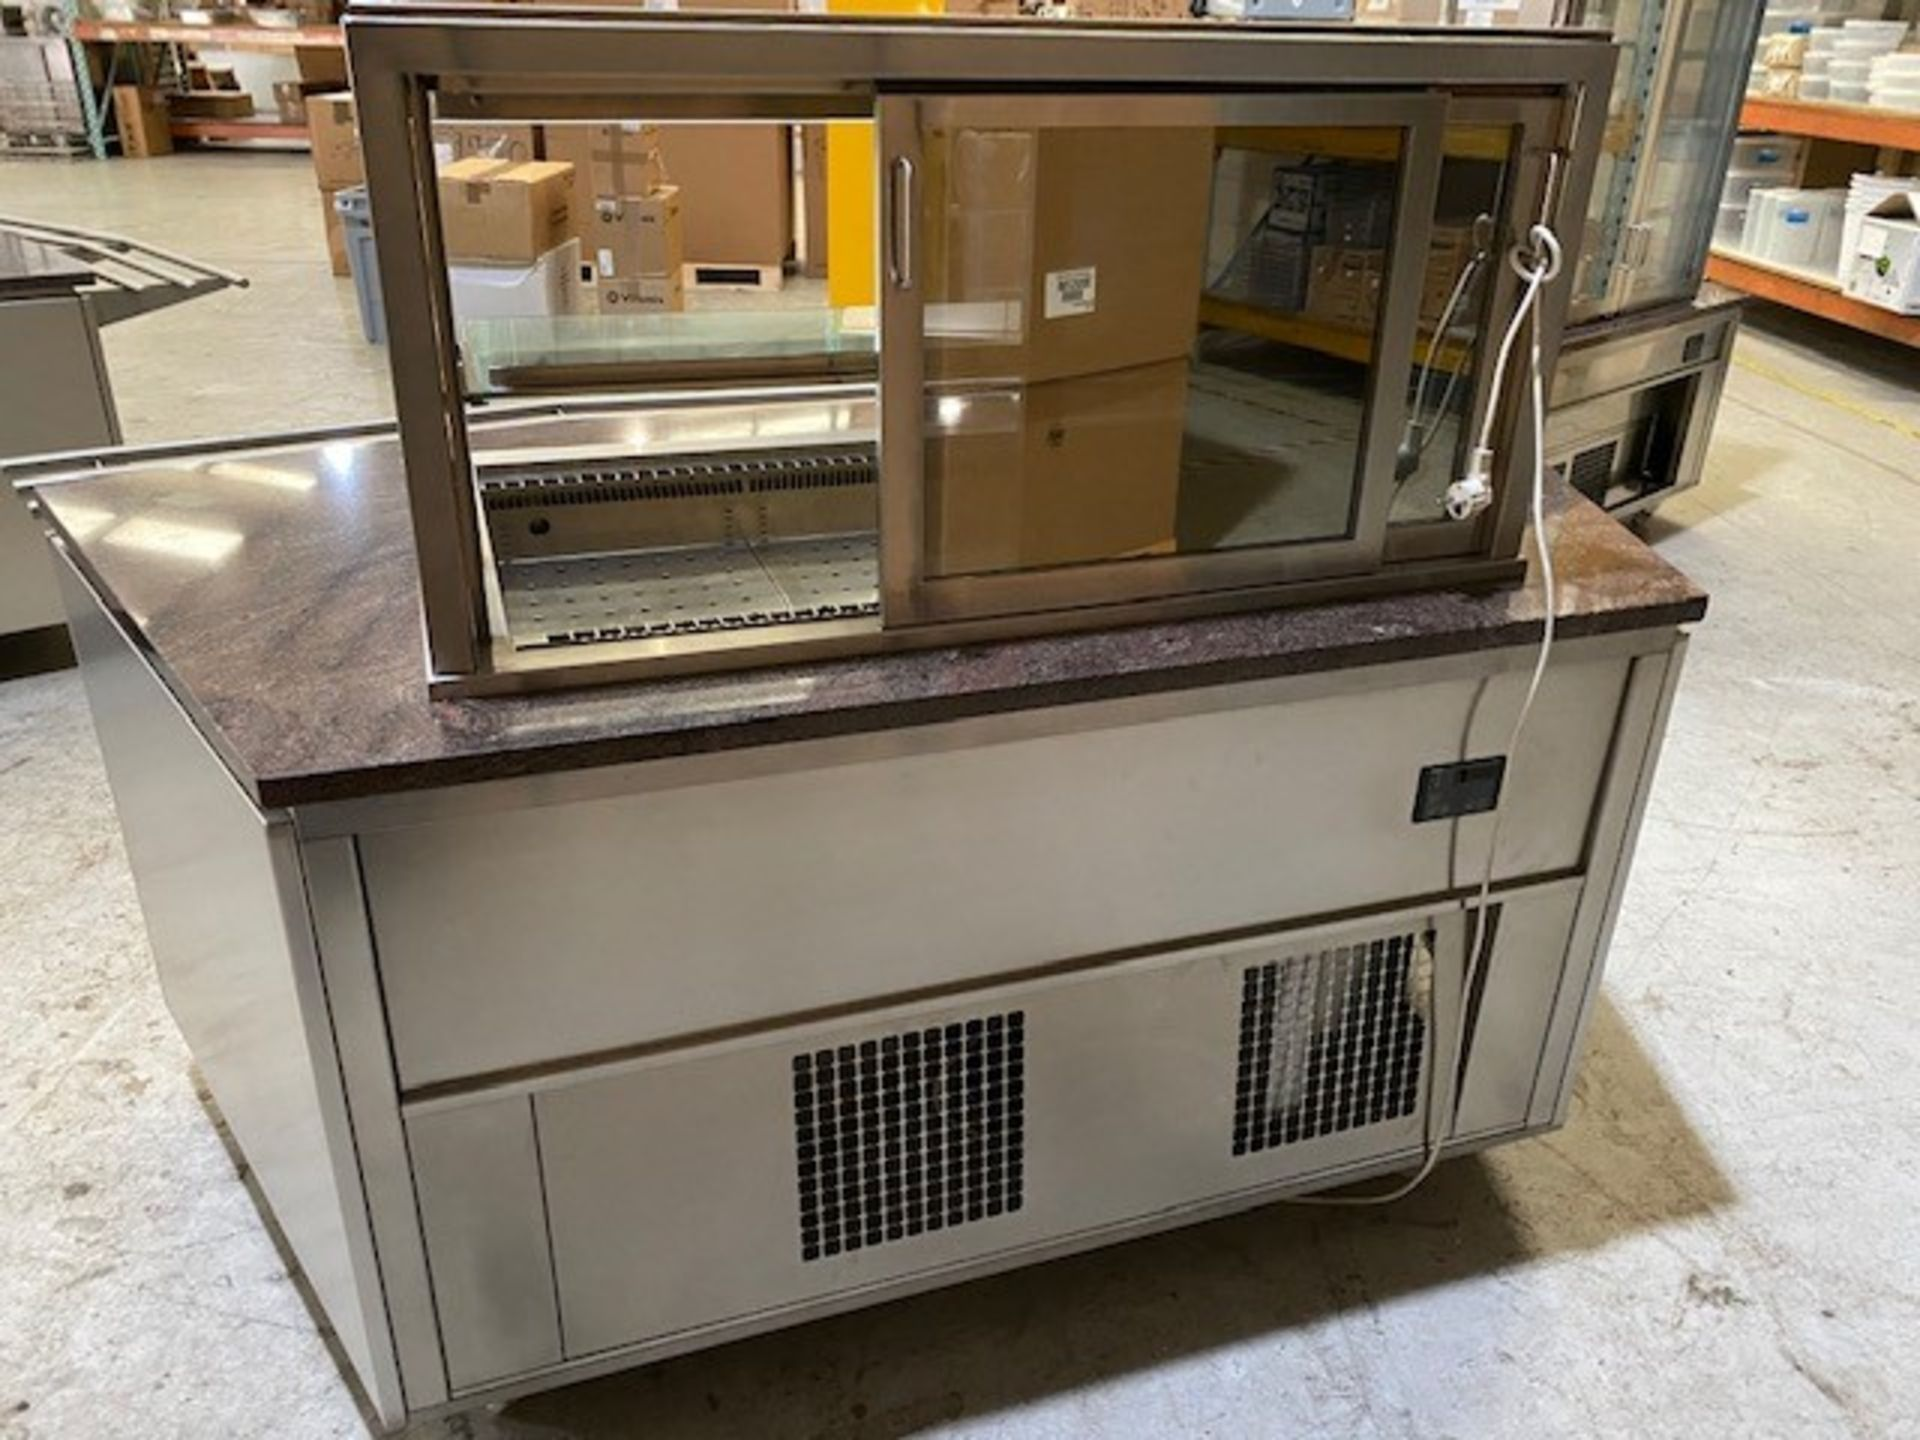 Lot 2 - Refrigerated Drop in Blown Air Well Self Service Unit.